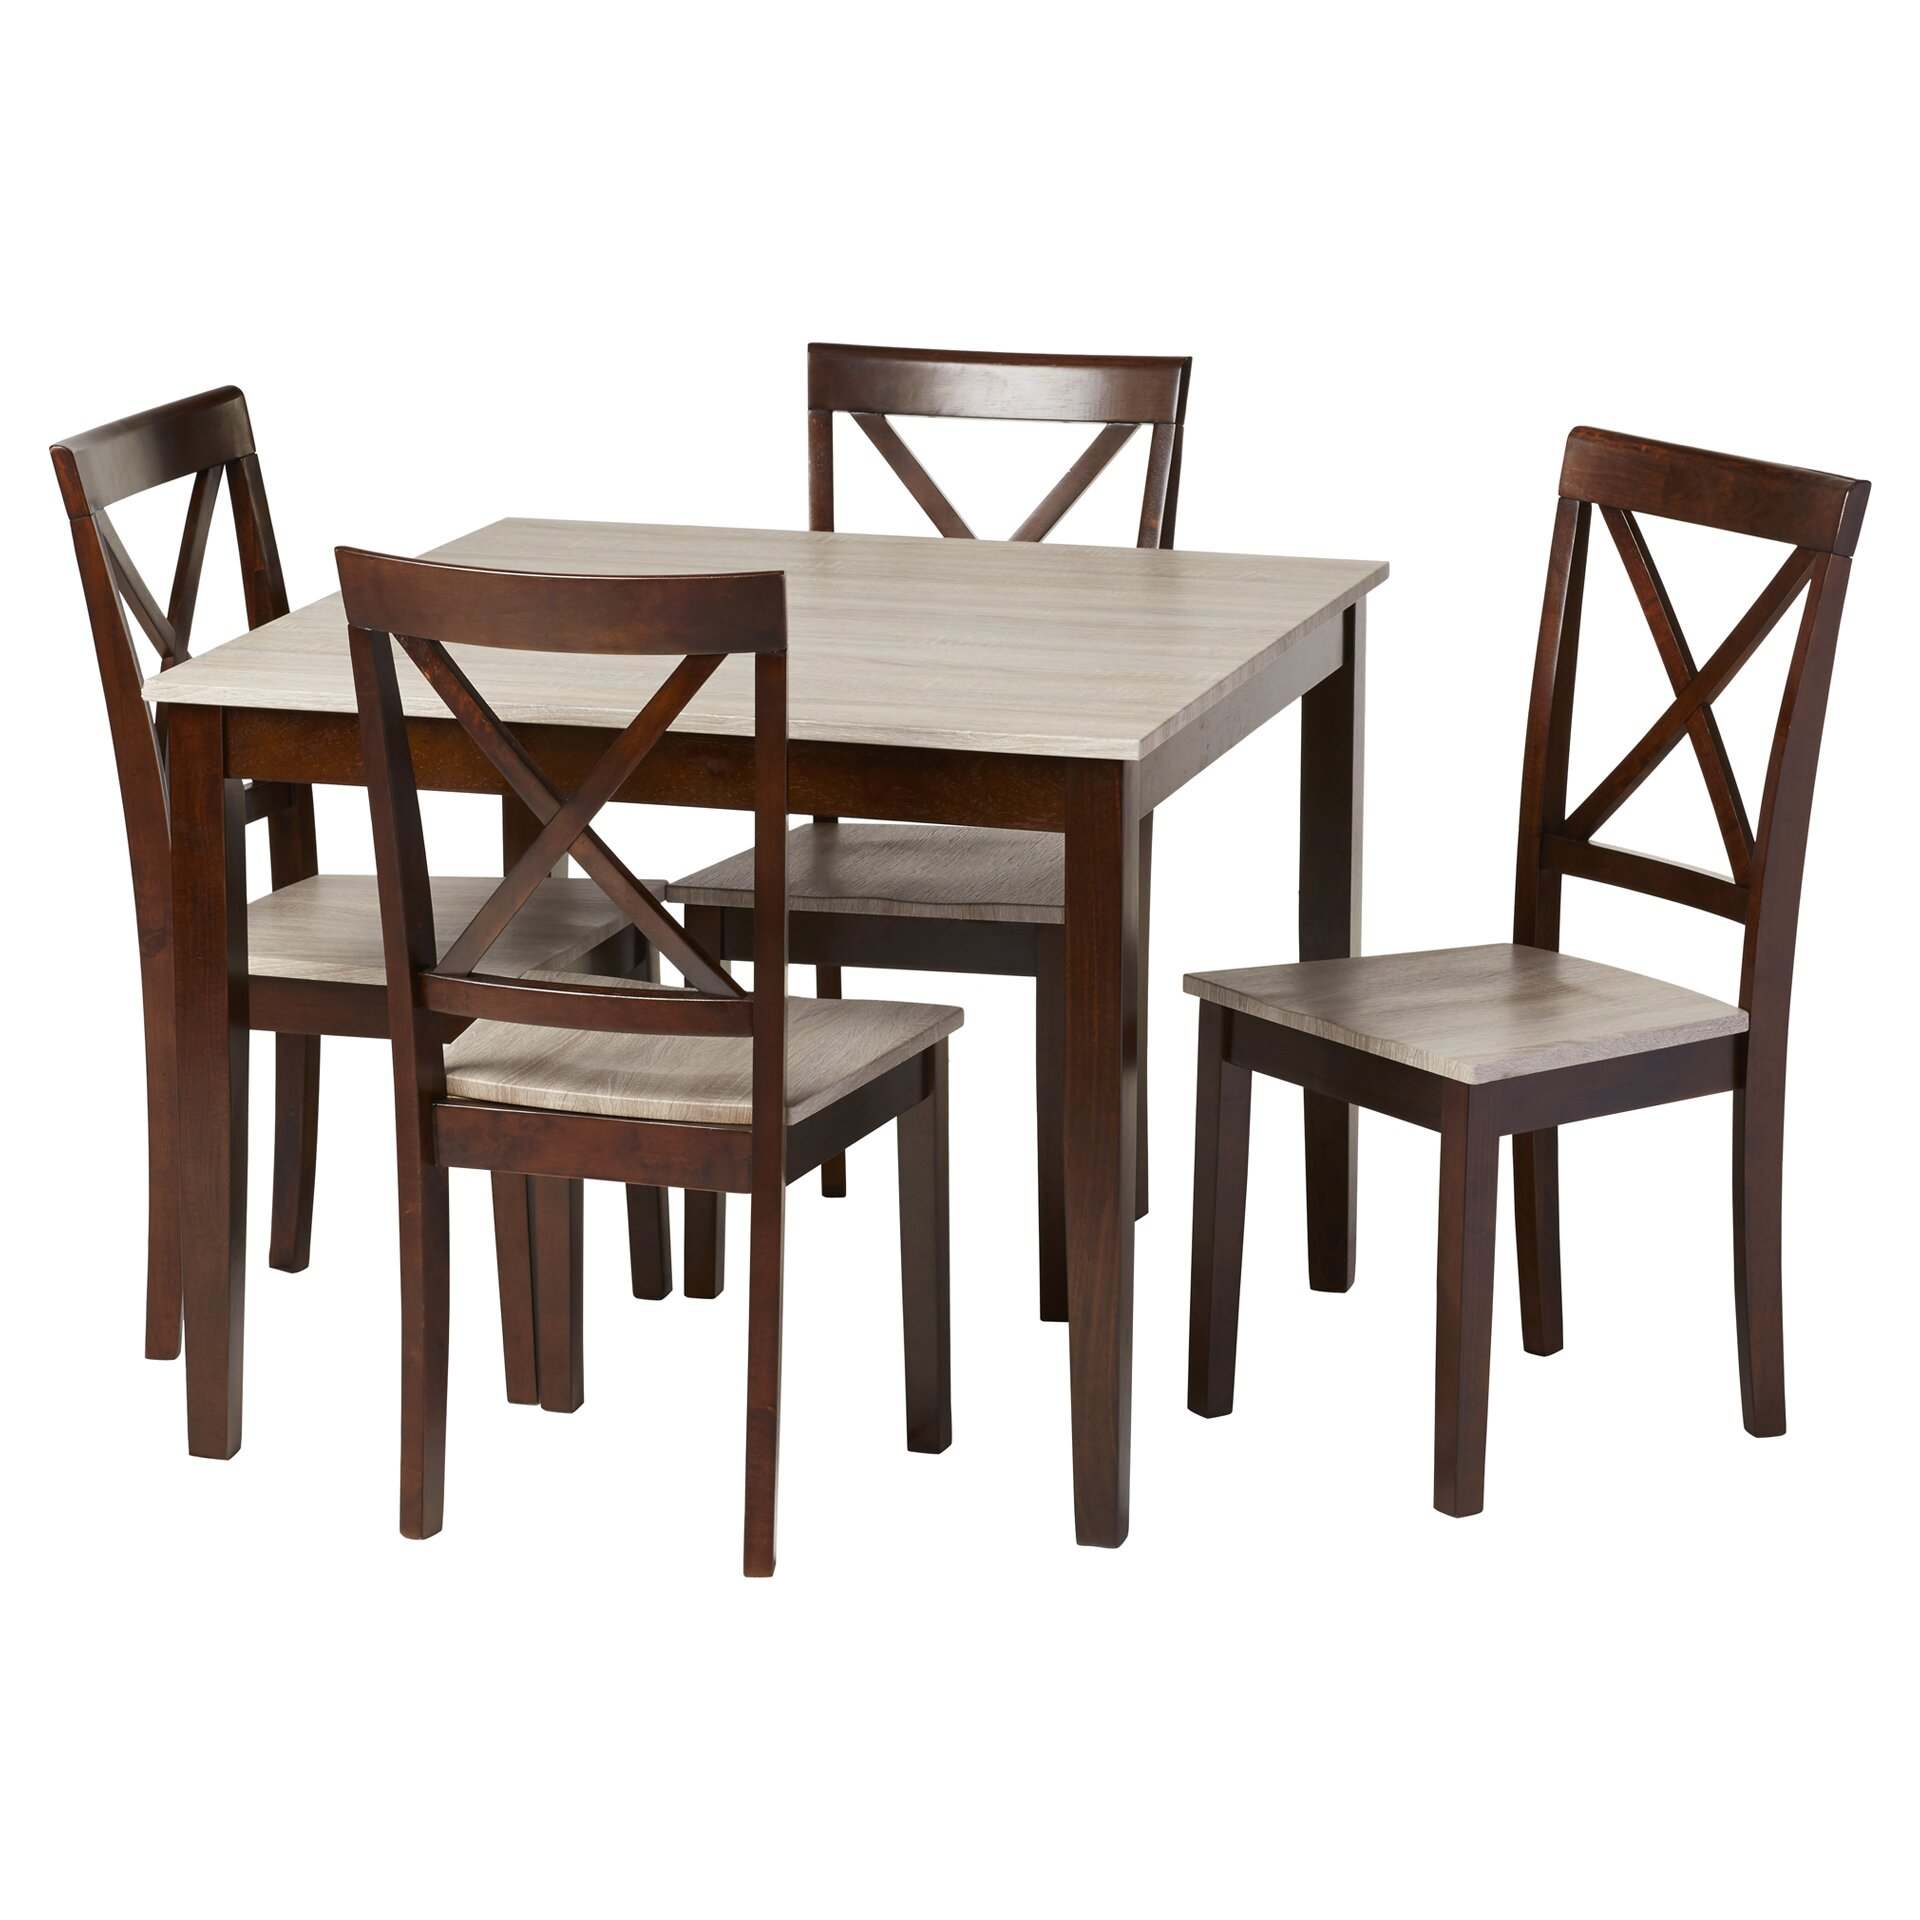 Andover mills tilley rustic 5 piece dining set reviews for 5 piece dining set